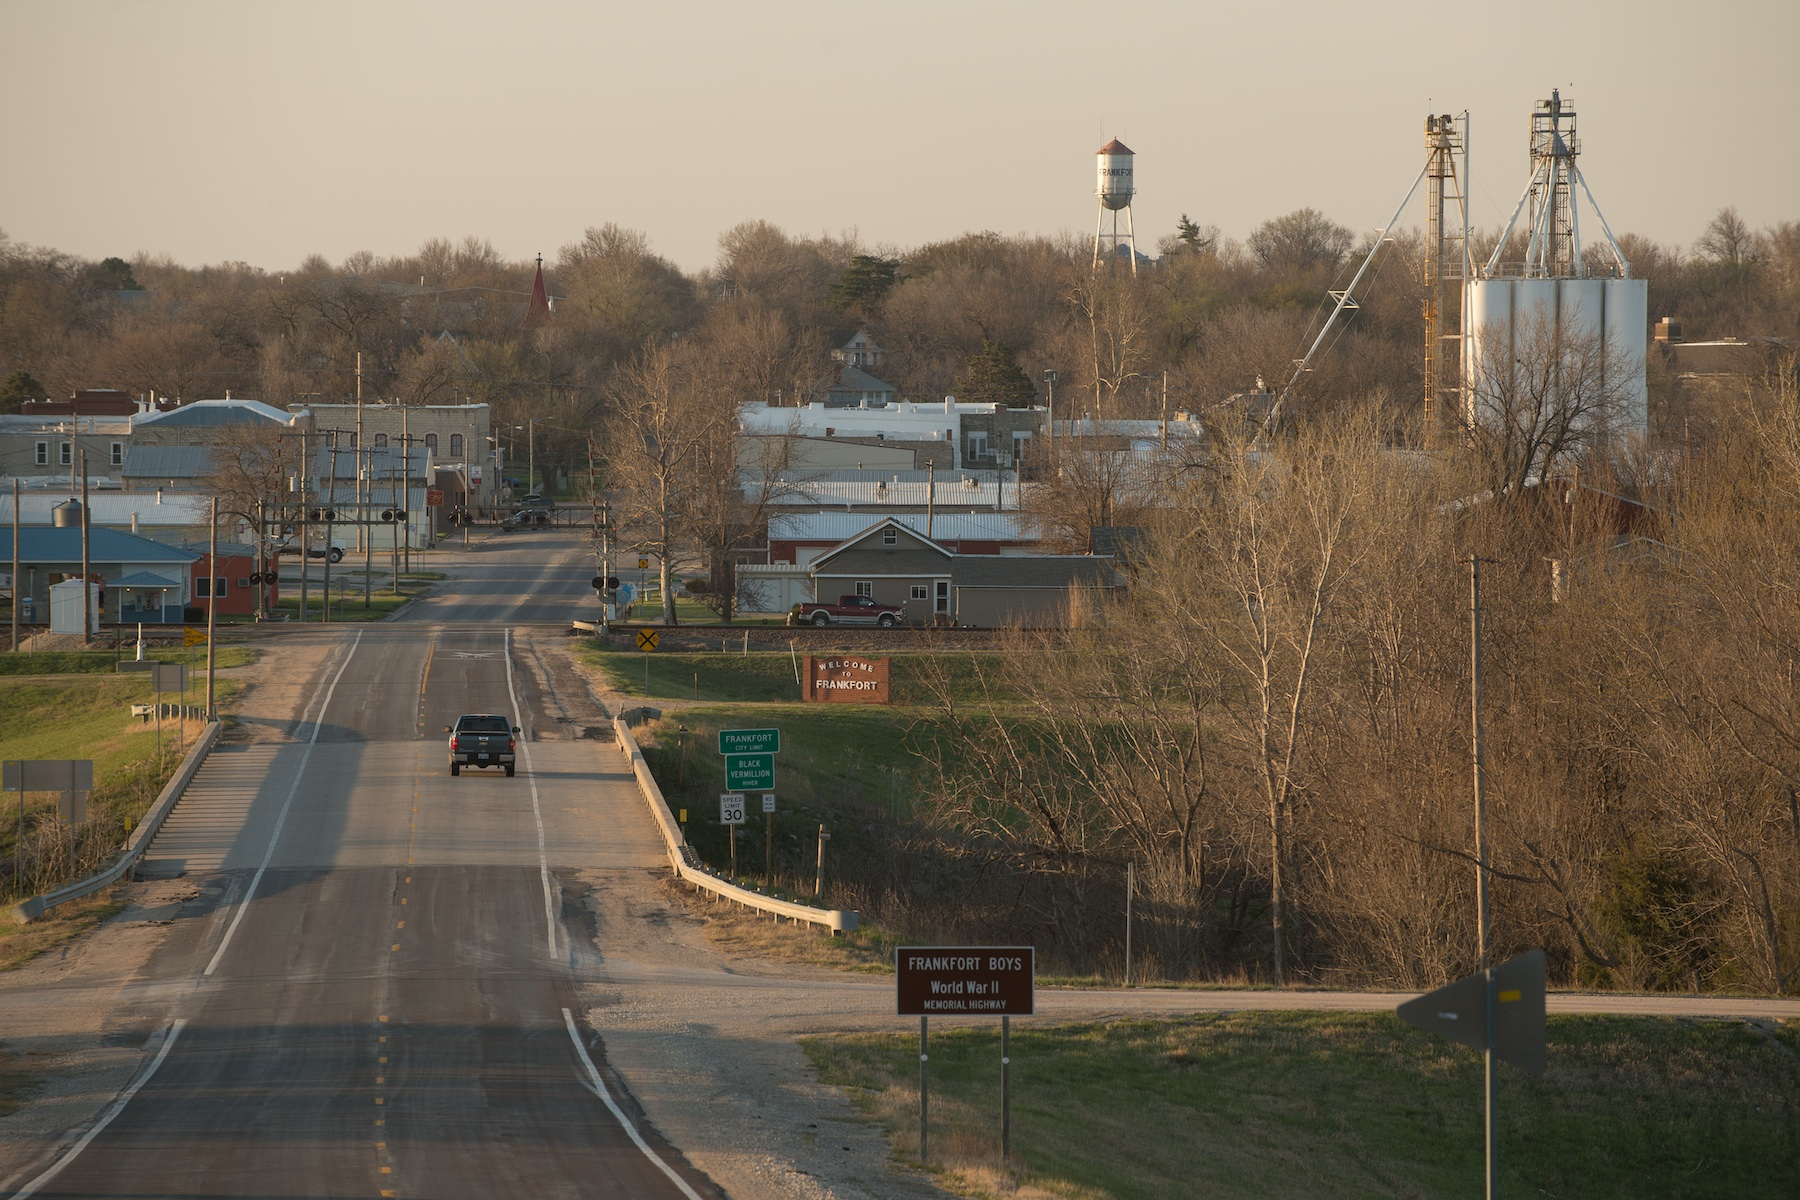 Frankfort, Kansas, looking straight down Main Street. Pictured are the main rail lines, grain elevators, old water tower, and church steeple popping up from the trees